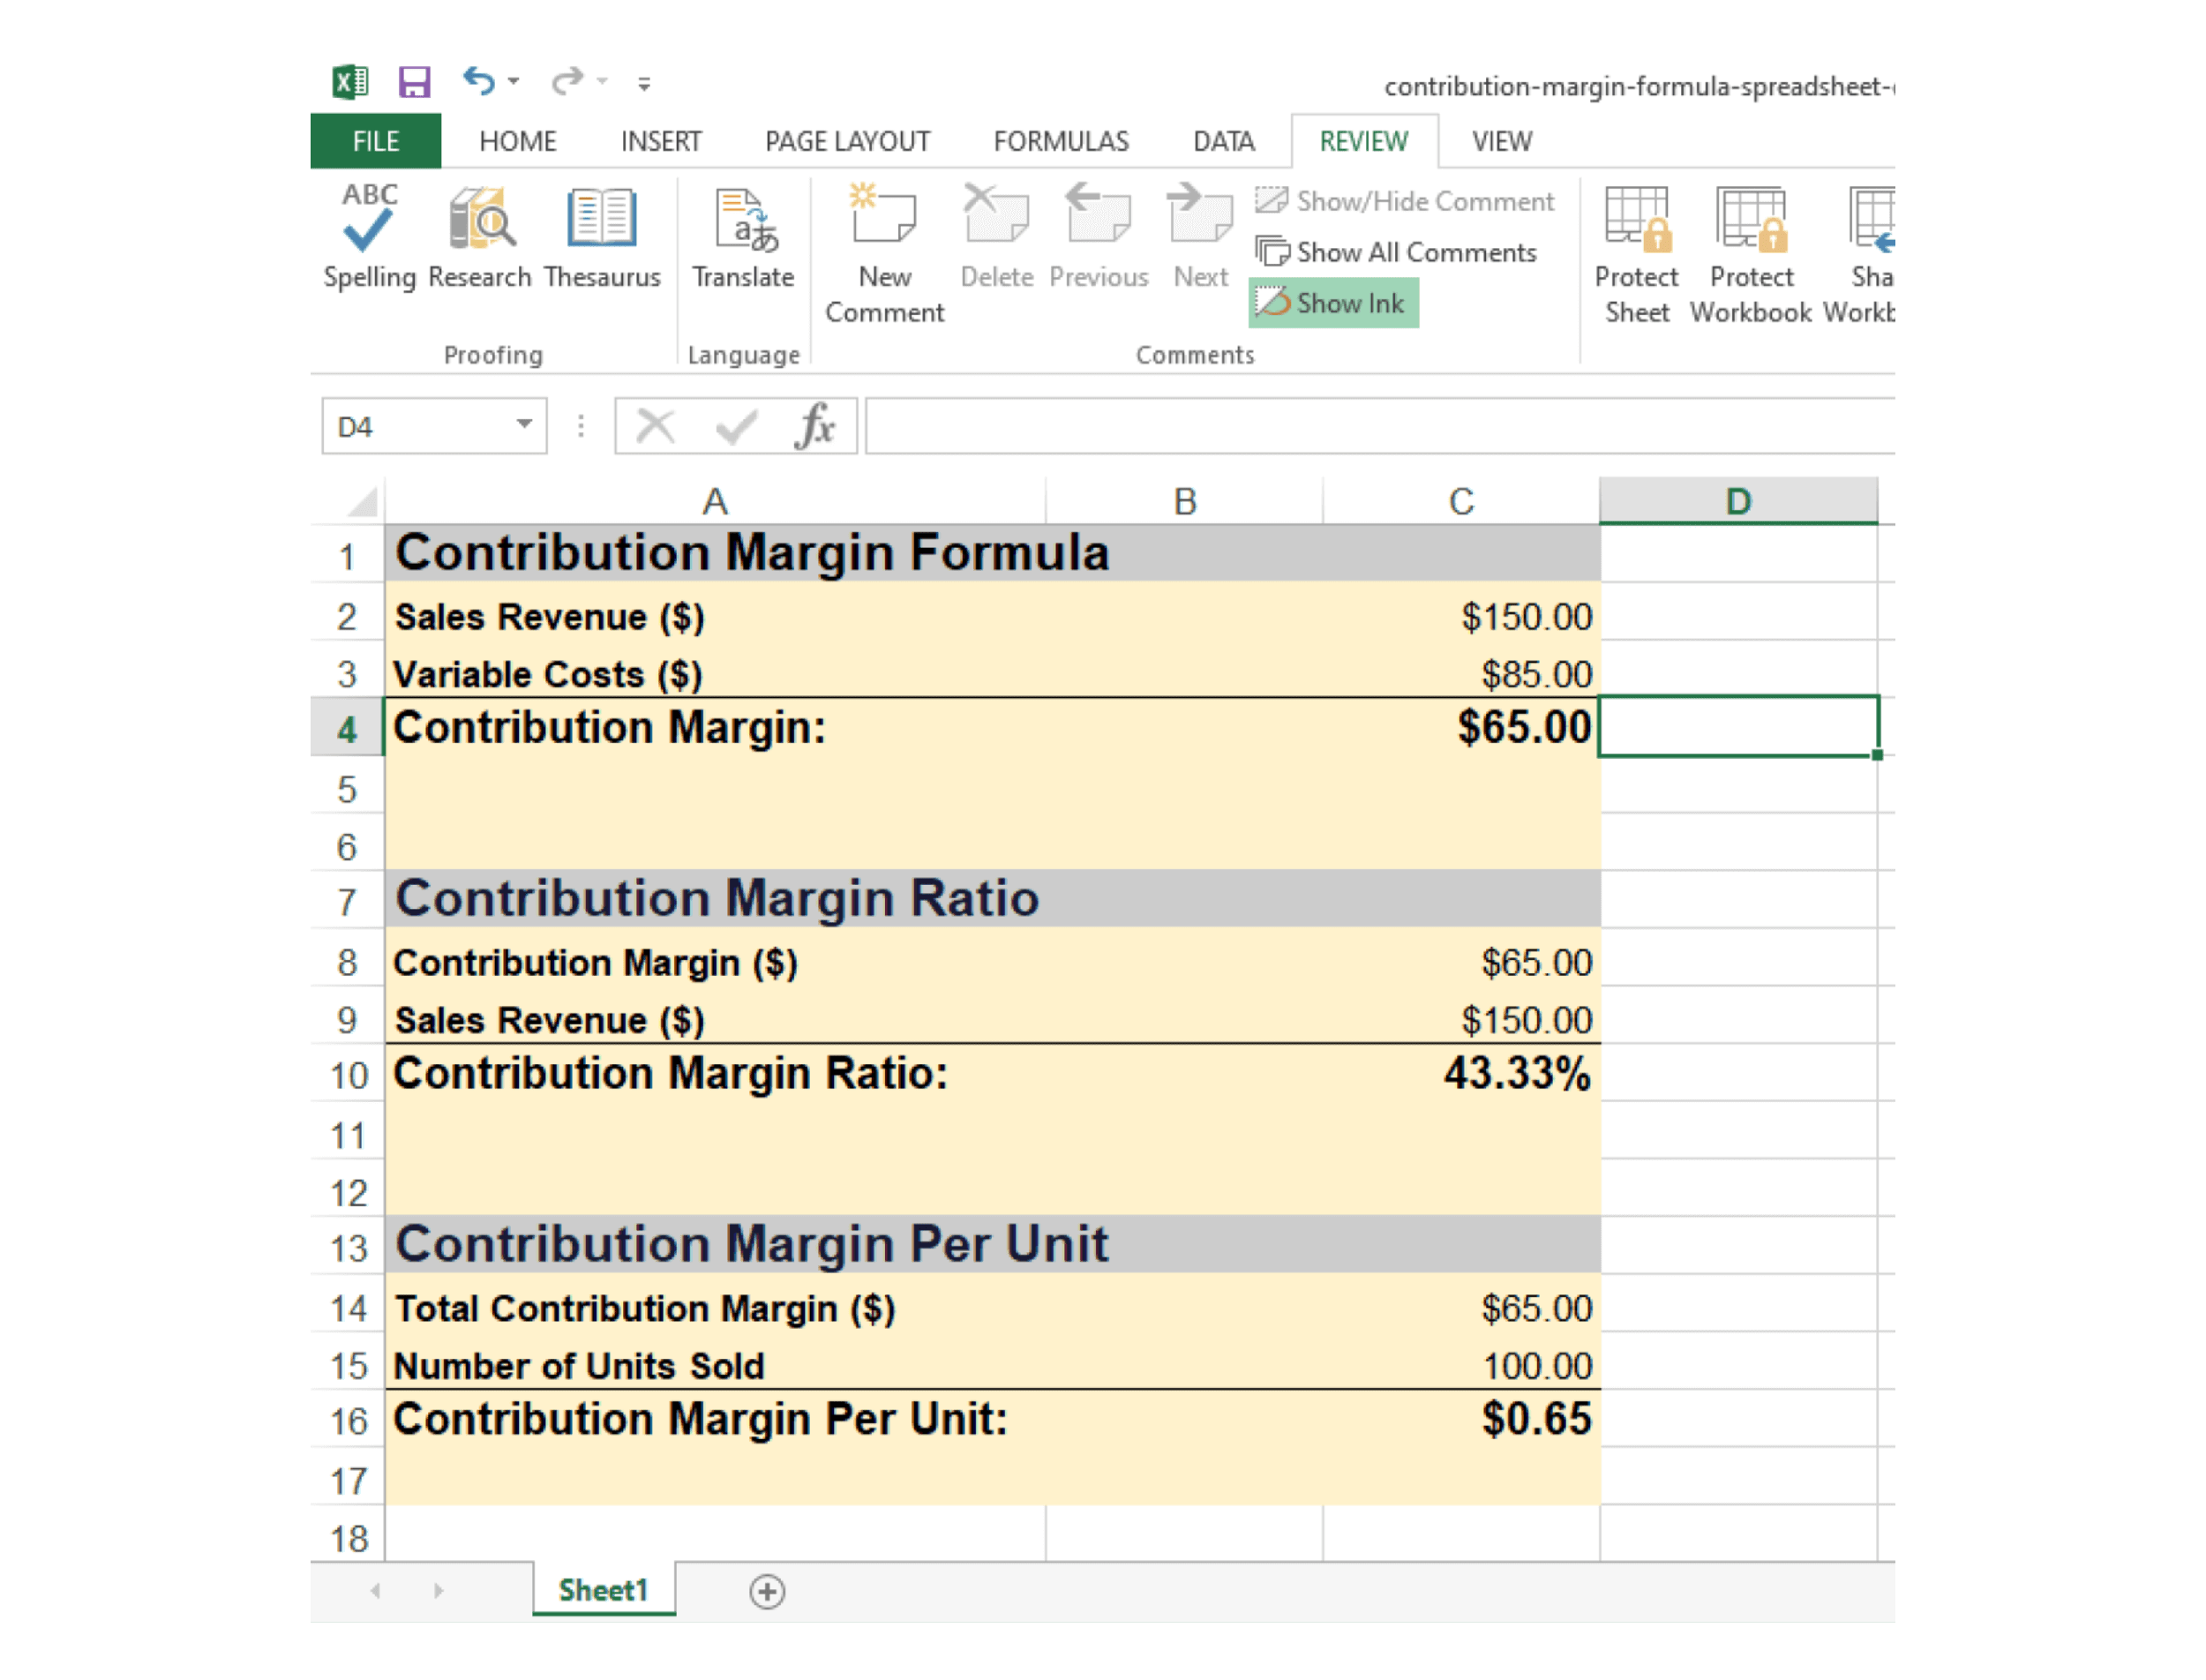 Contribution Margin Formula Spreadsheet 20190819 1